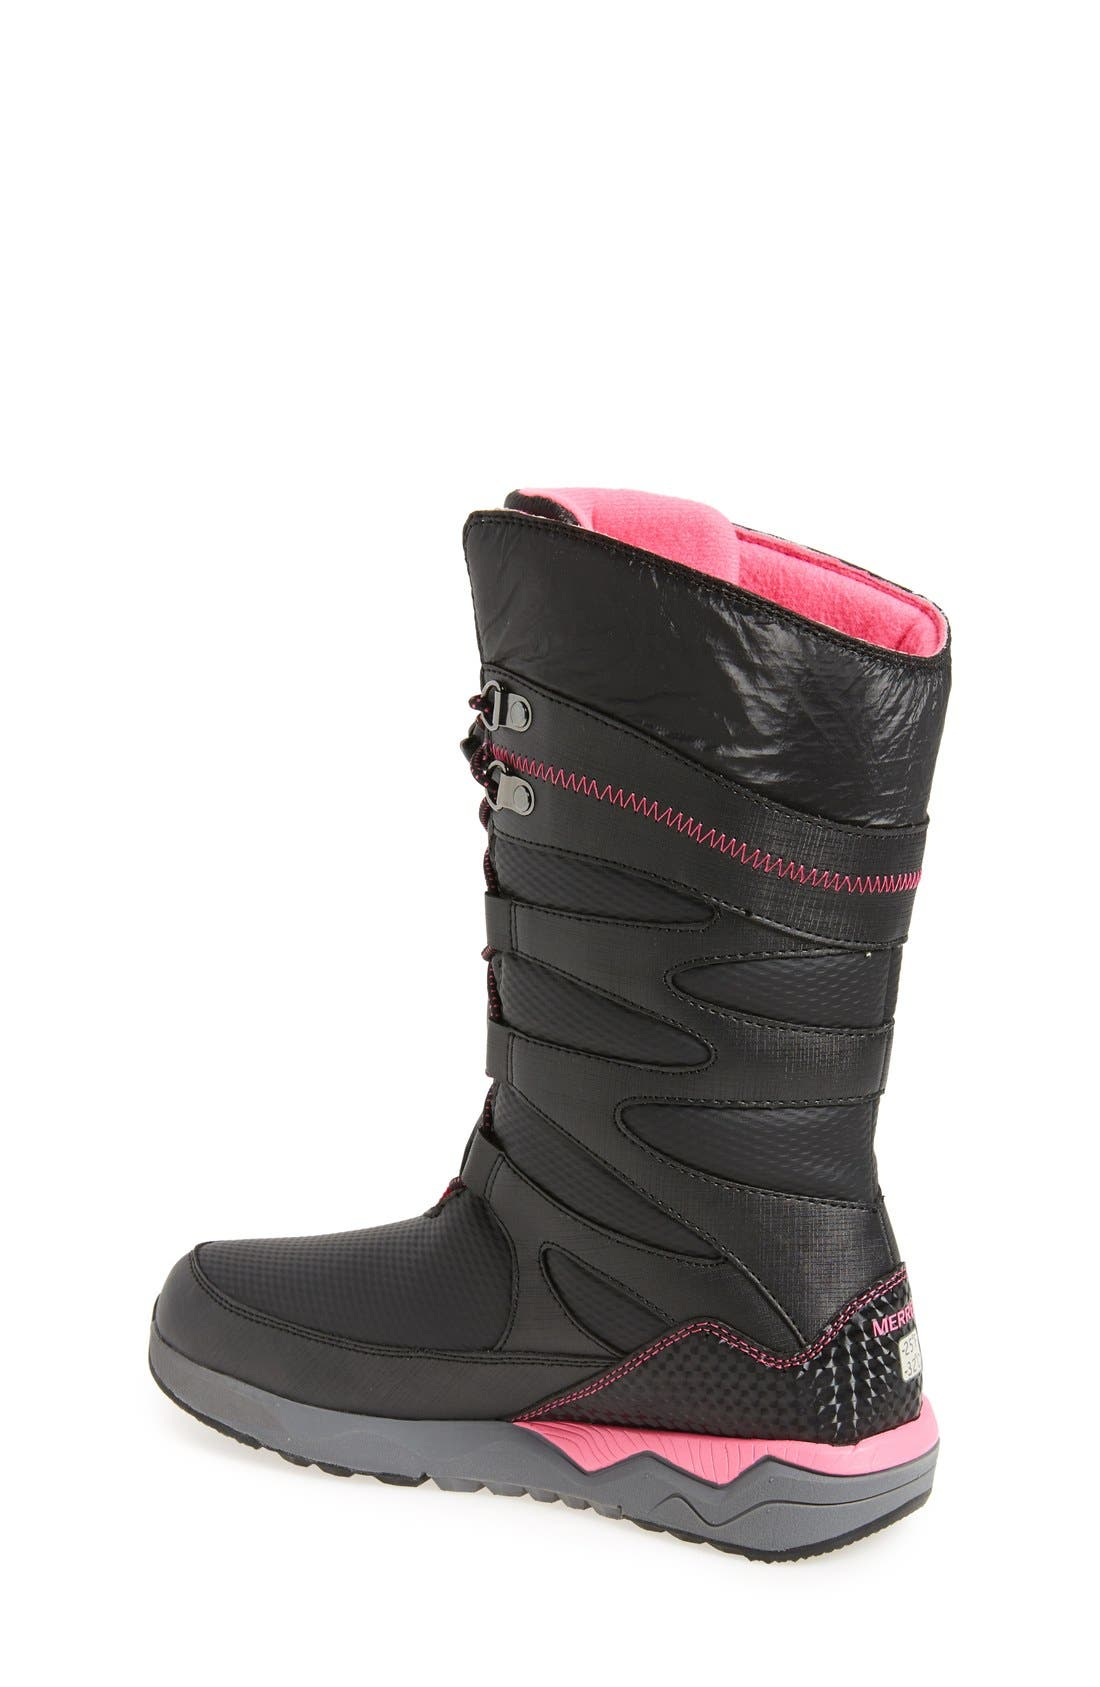 Alternate Image 2  - Merrell 'Arctic Blast' Waterproof Snow Boot (Toddler, Little Kid & Big Kid)